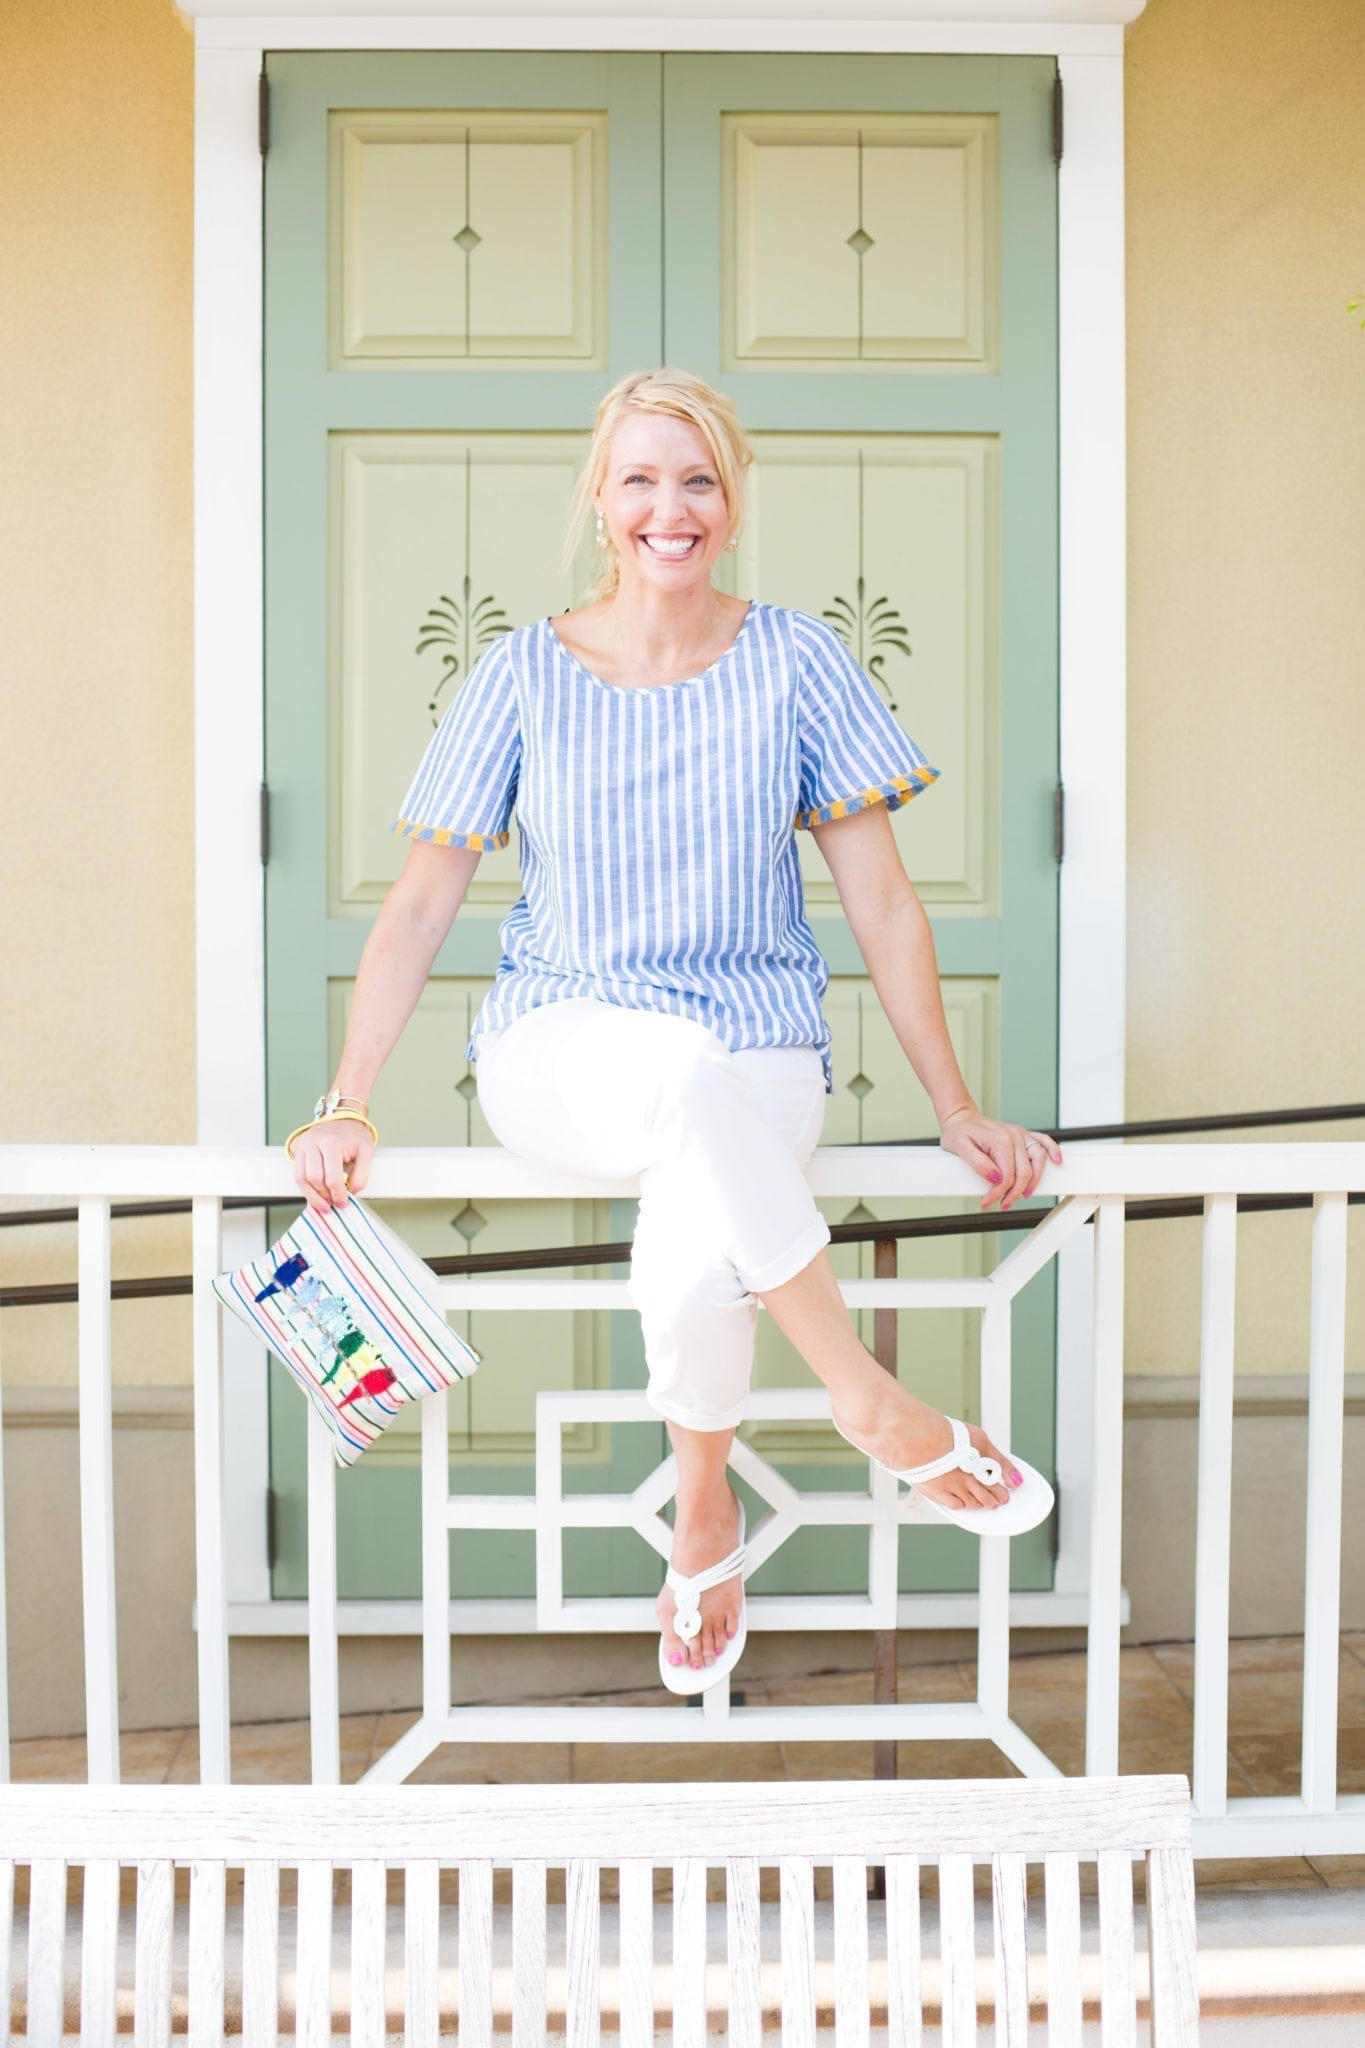 Blue and white stripe shirt with fringe on sleeve. Yellow and blue fringe and white sandals with colorful clutch.